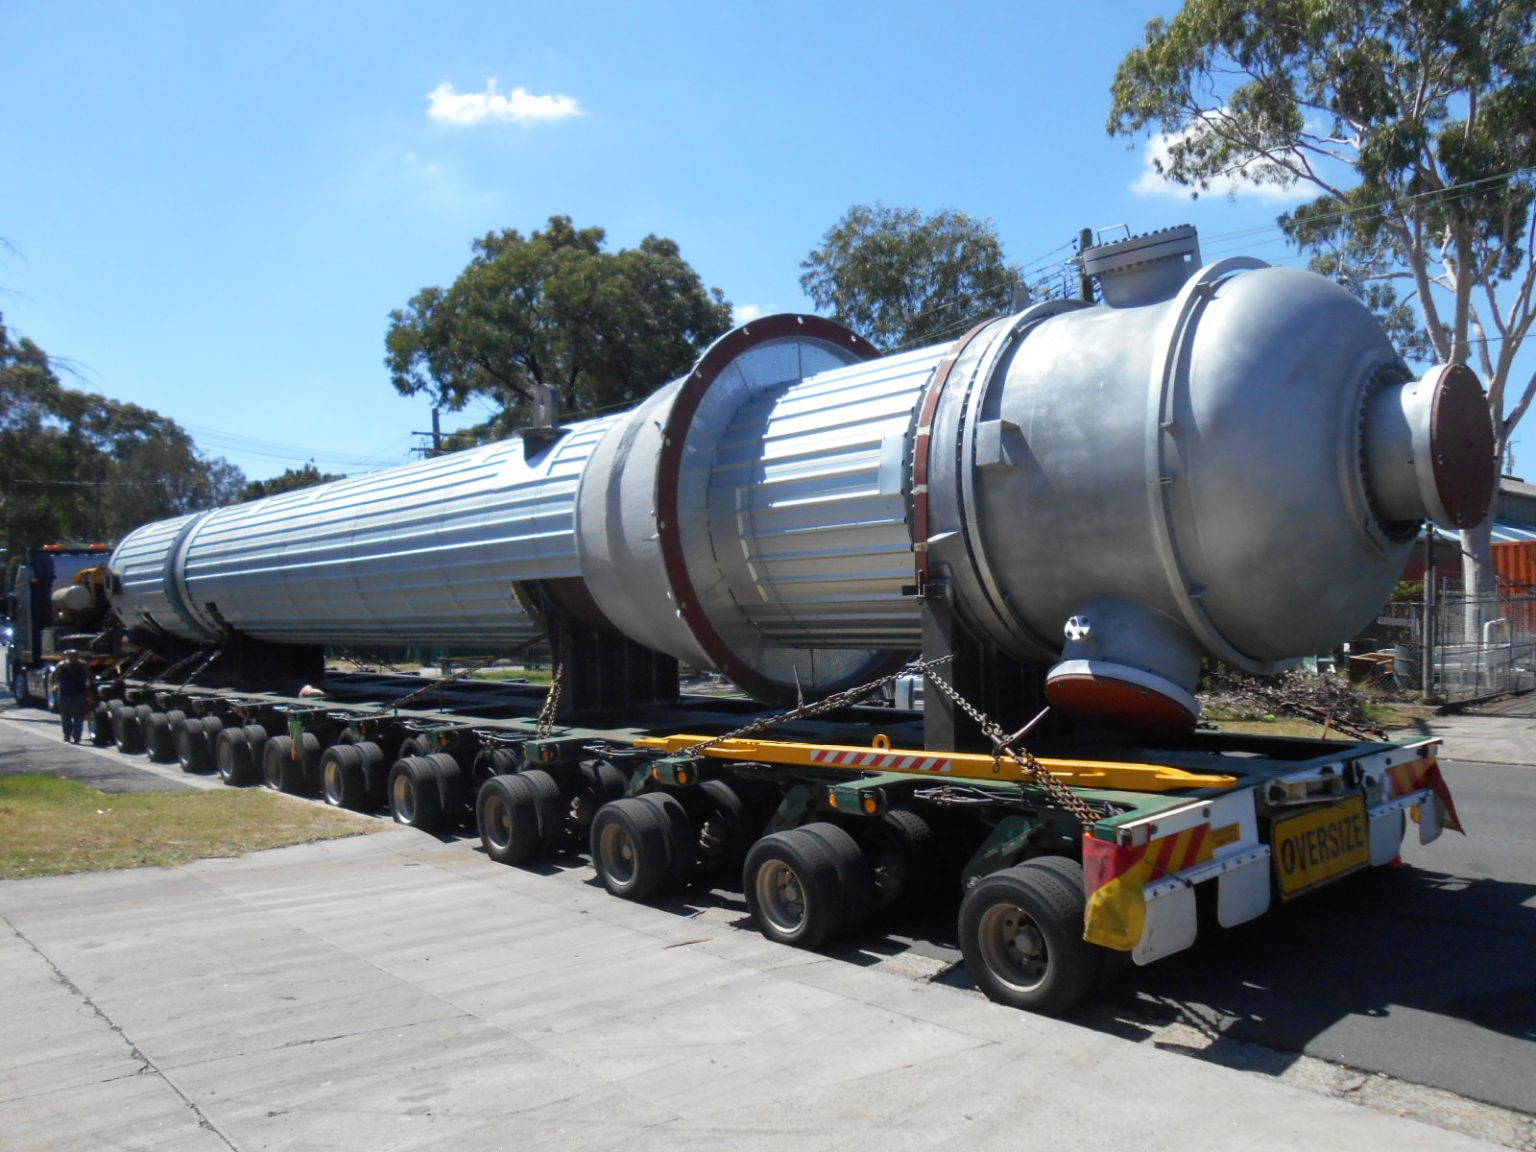 Texas tower exchanger on trailer